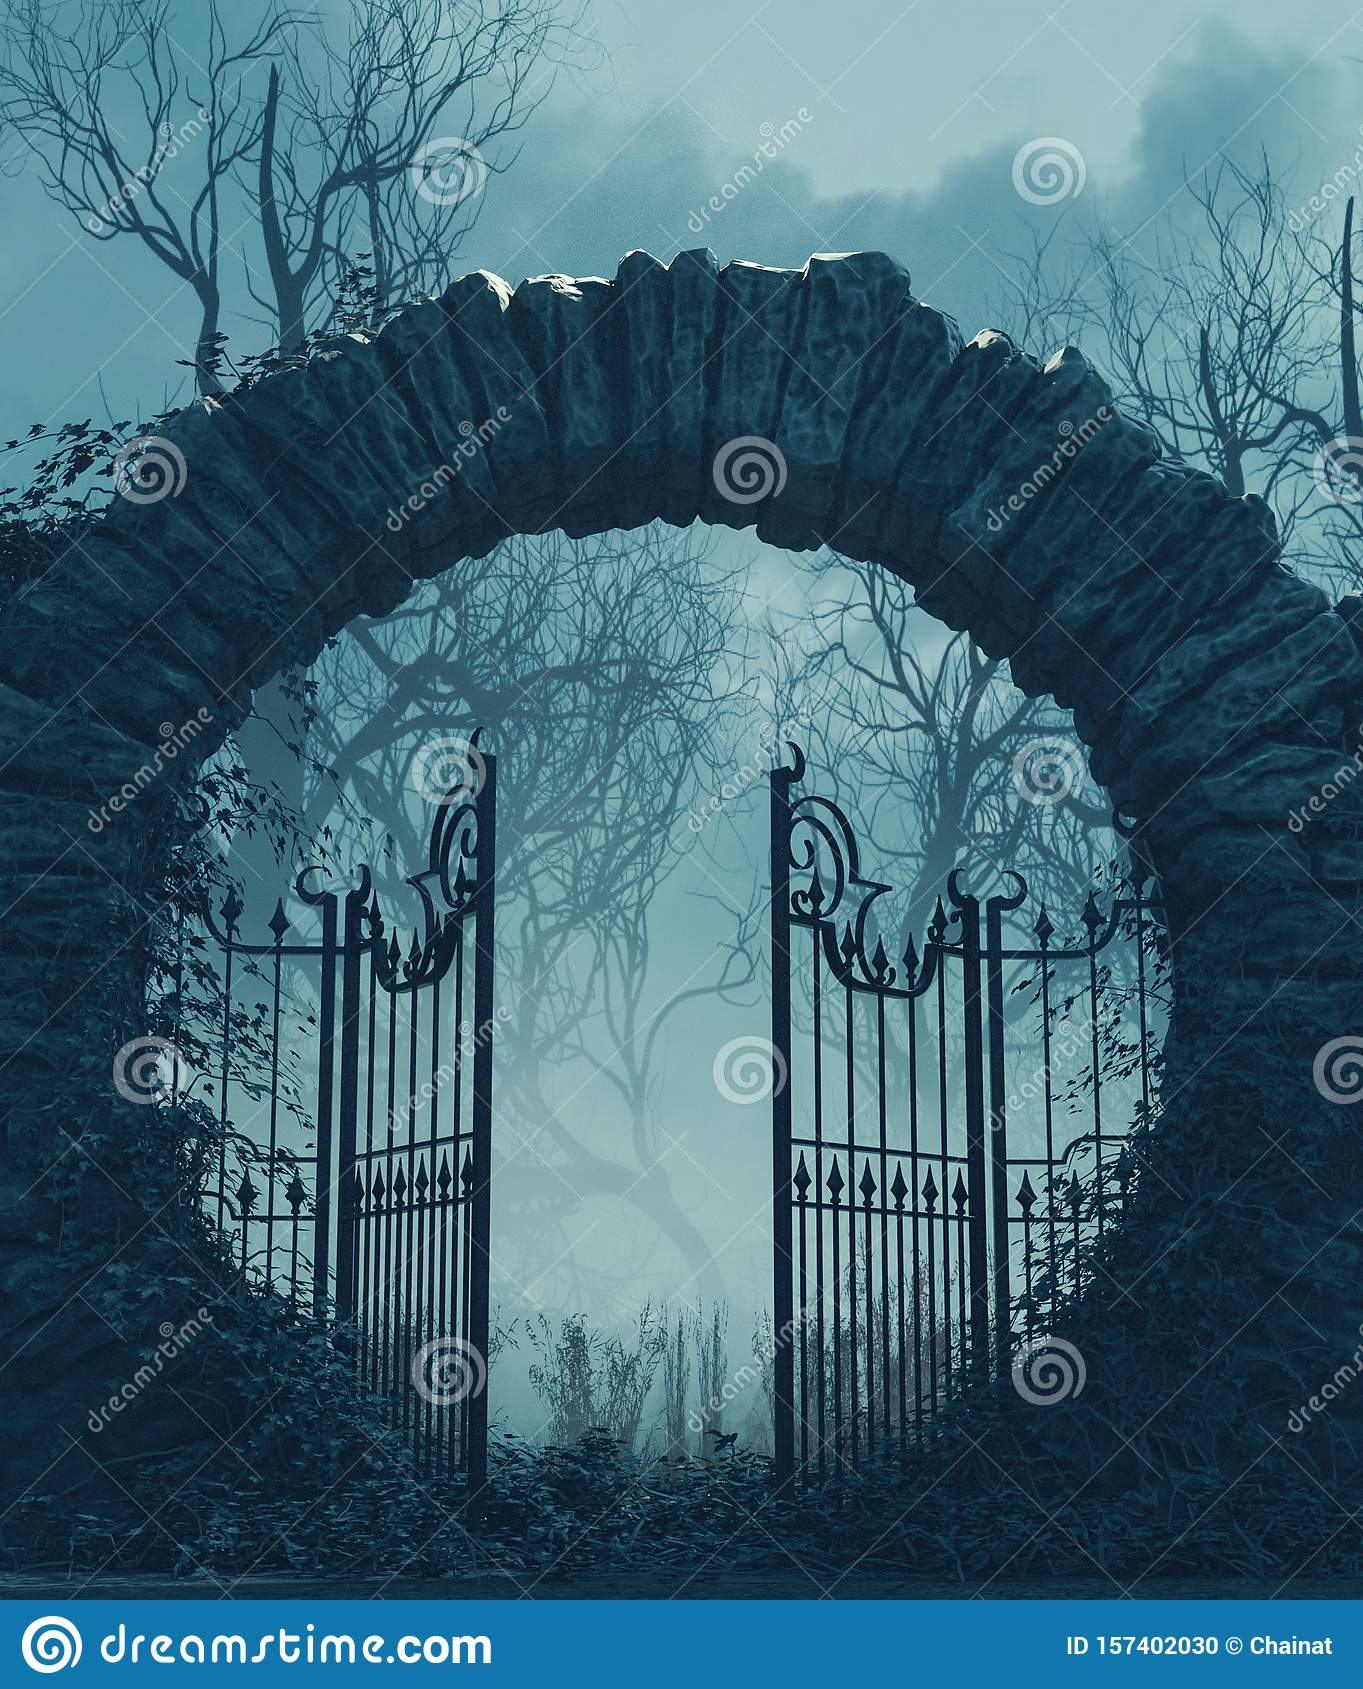 Gate Clipart Cemetery Gates - Gate Clipart - Png Download - Full Size  Clipart (#318287) - PinClipart